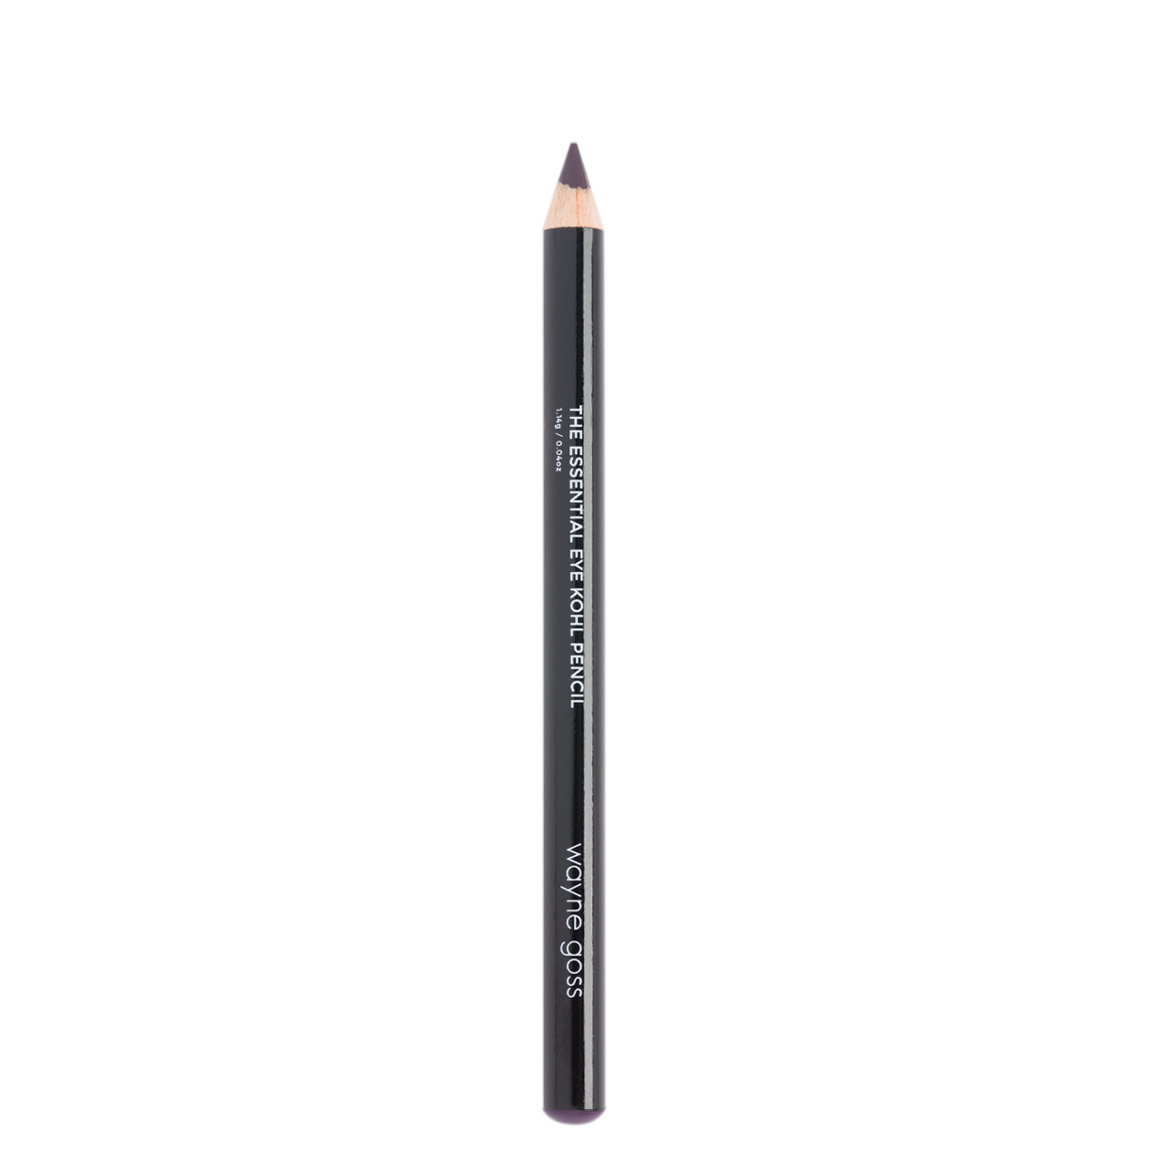 Wayne Goss The Essential Eye Kohl Pencil Deep Amethyst alternative view 1.